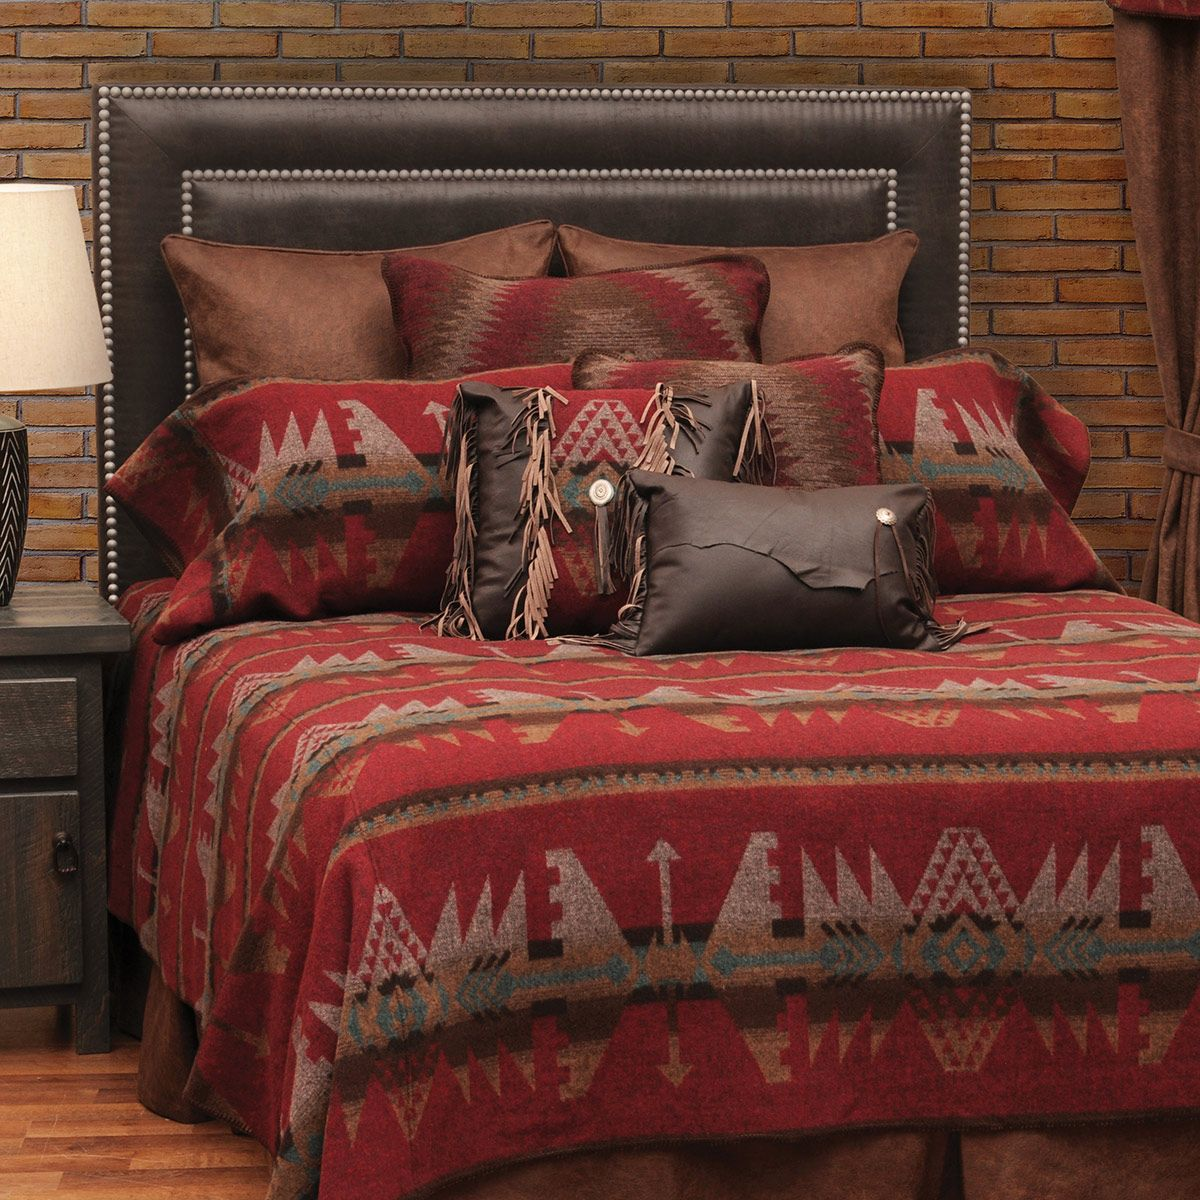 Yellowstone III Basic Bed Set - Cal. King